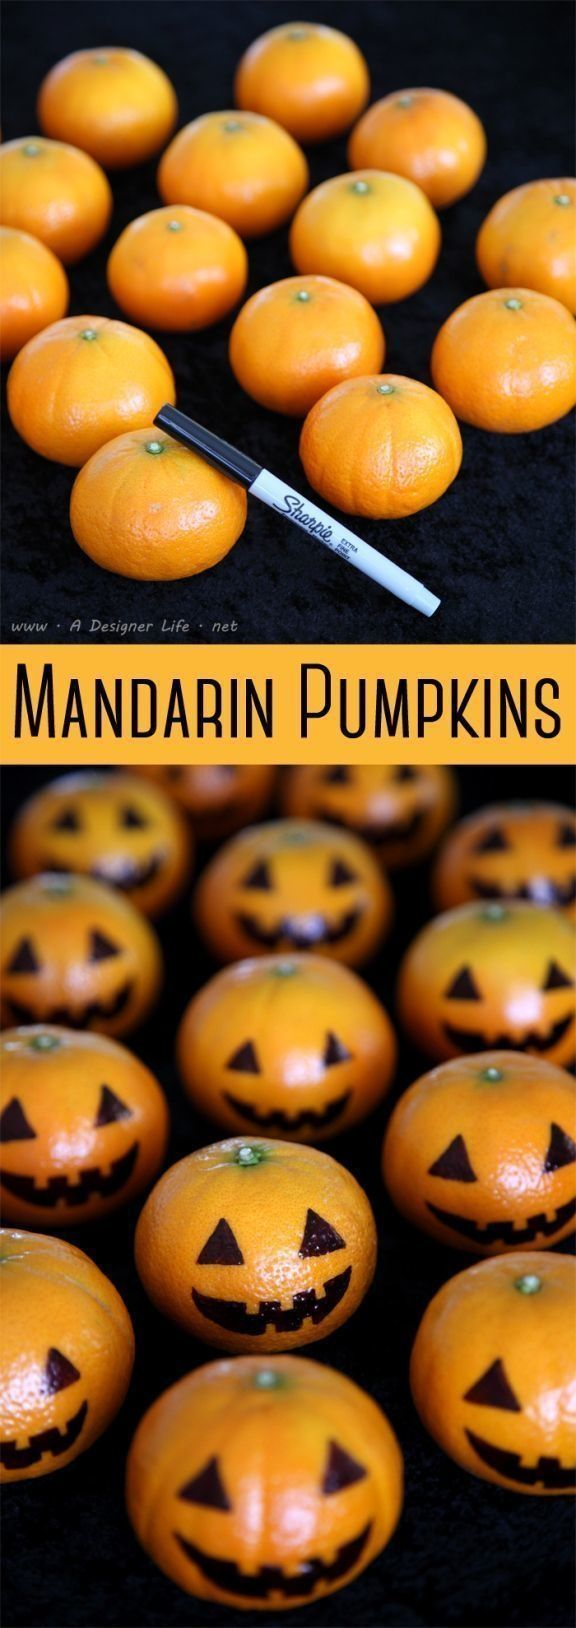 EMGNhalloweentreats12 #pumpkinrecipes